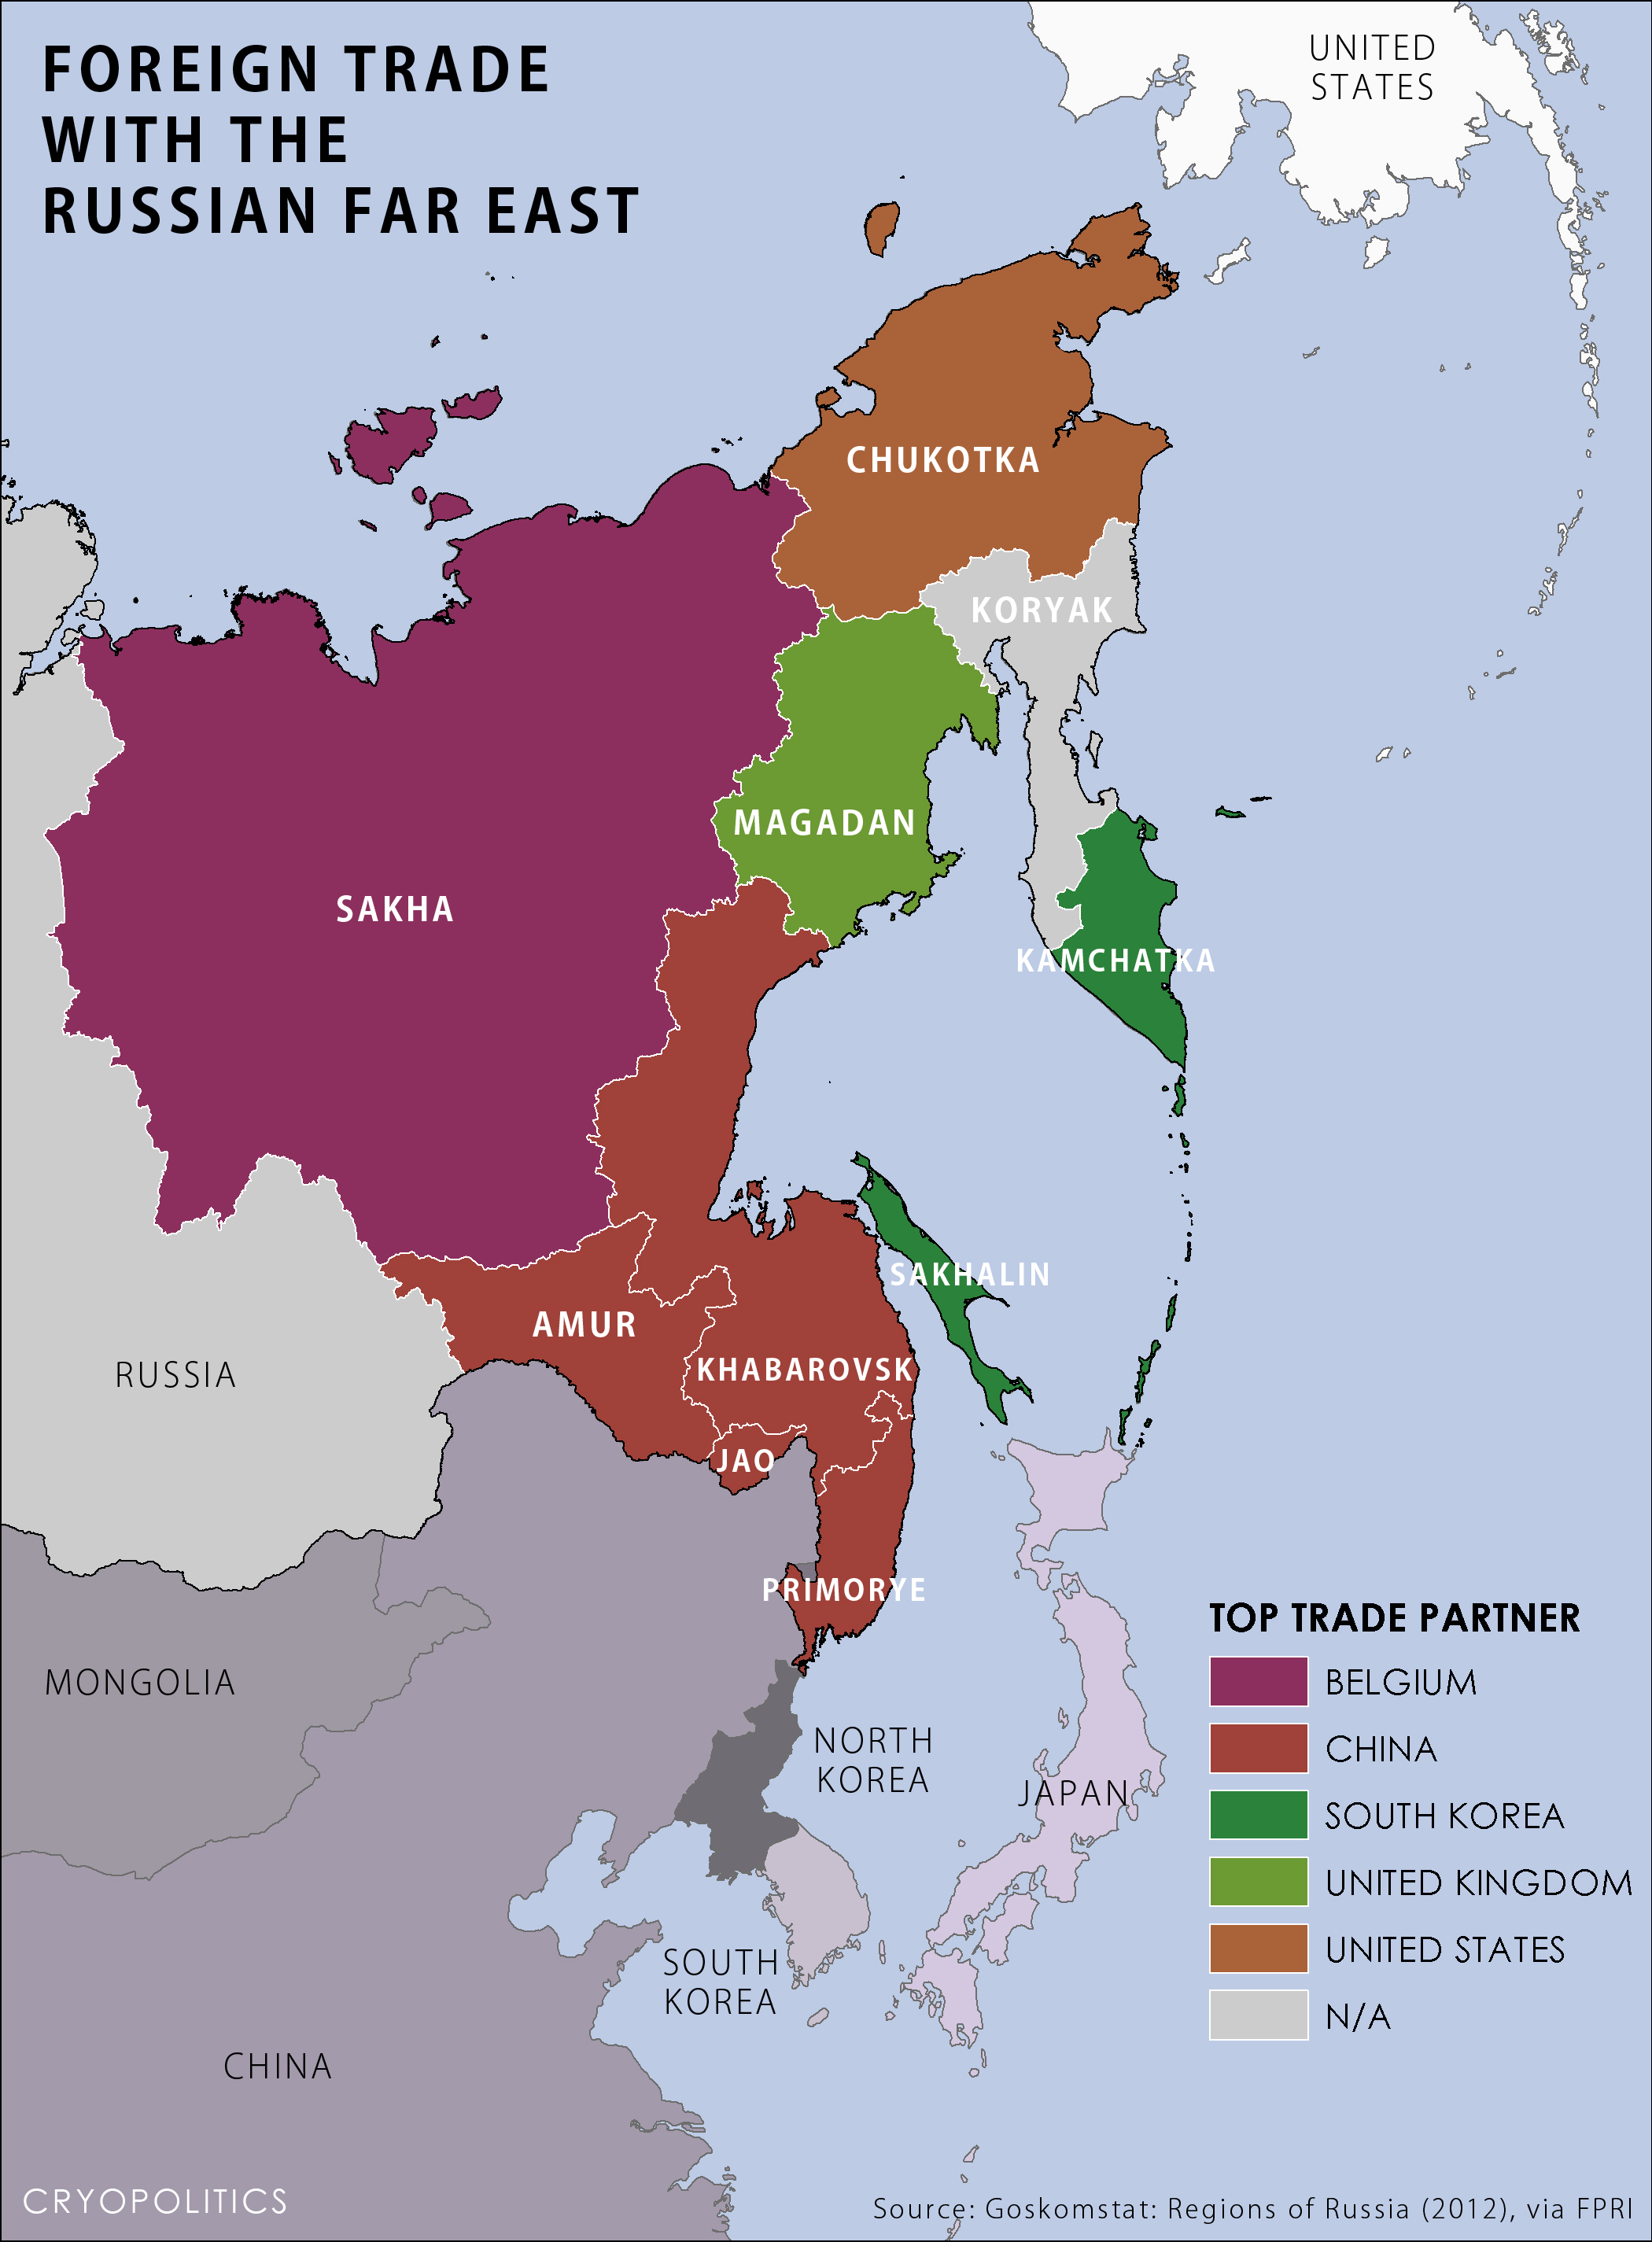 The Far East of Russia. Sights of the Far East